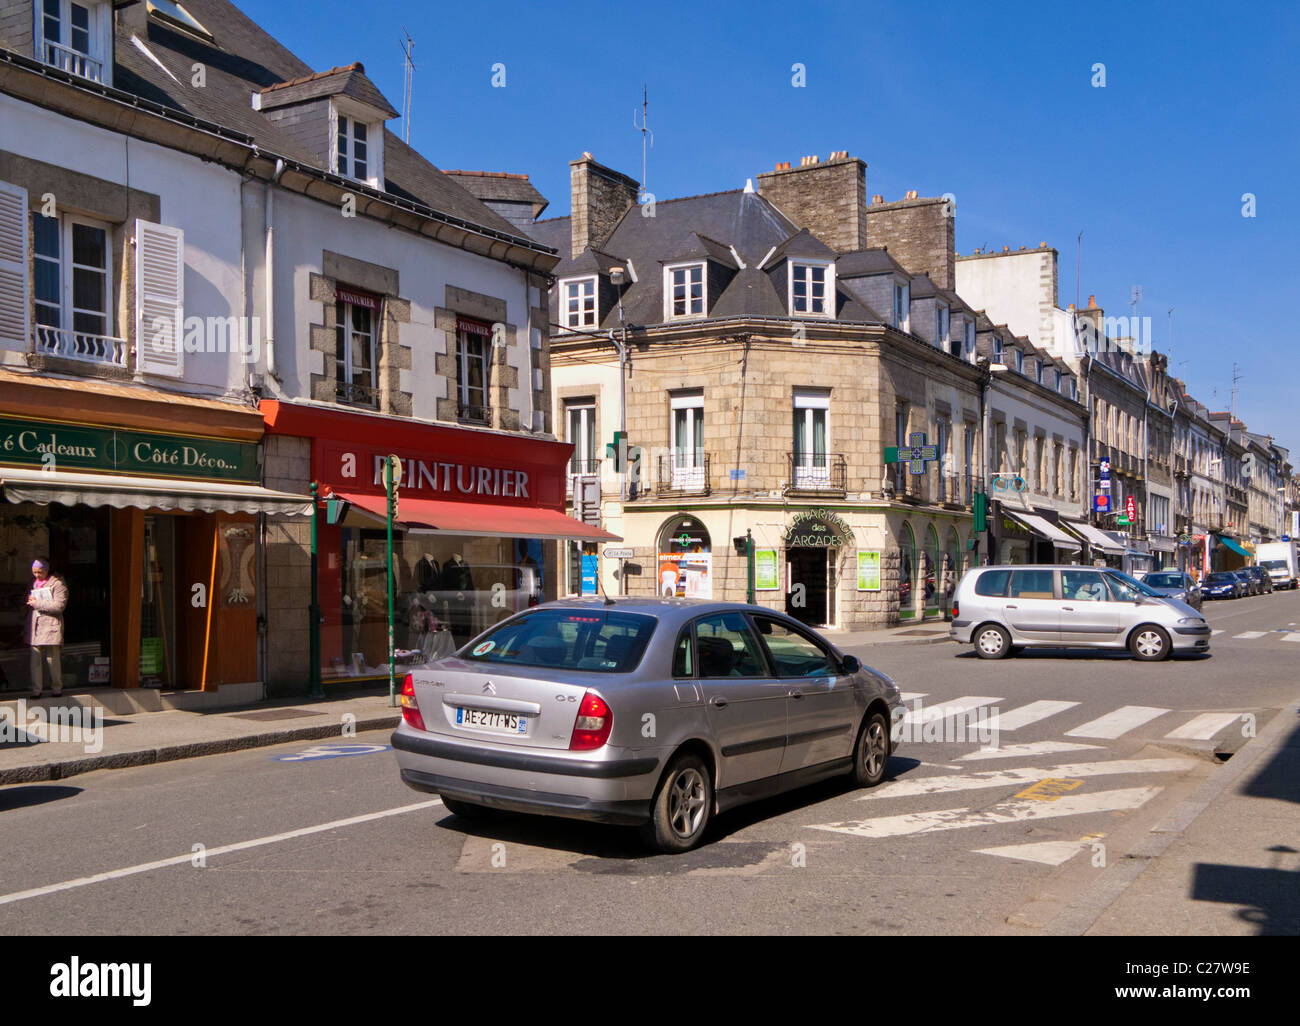 Shopping street and road junction, Pontivy, Morbihan, Brittany, France, Europe - Stock Image